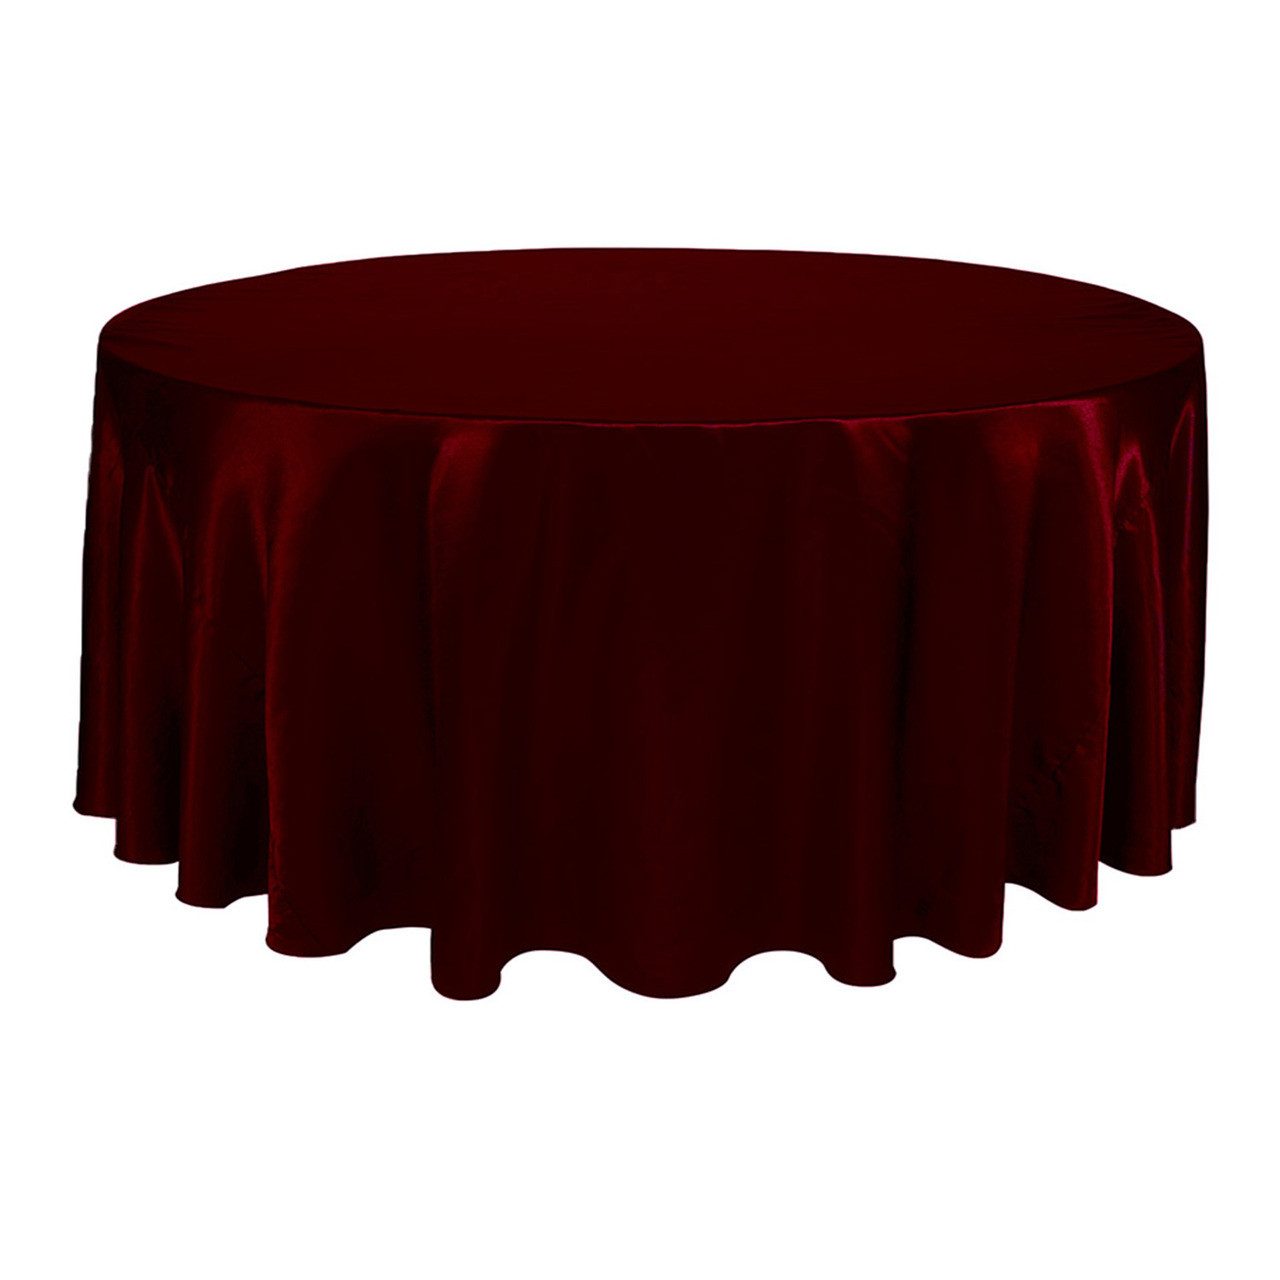 Tremendous 132 Inch Round Satin Tablecloth Burgundy Lamtechconsult Wood Chair Design Ideas Lamtechconsultcom